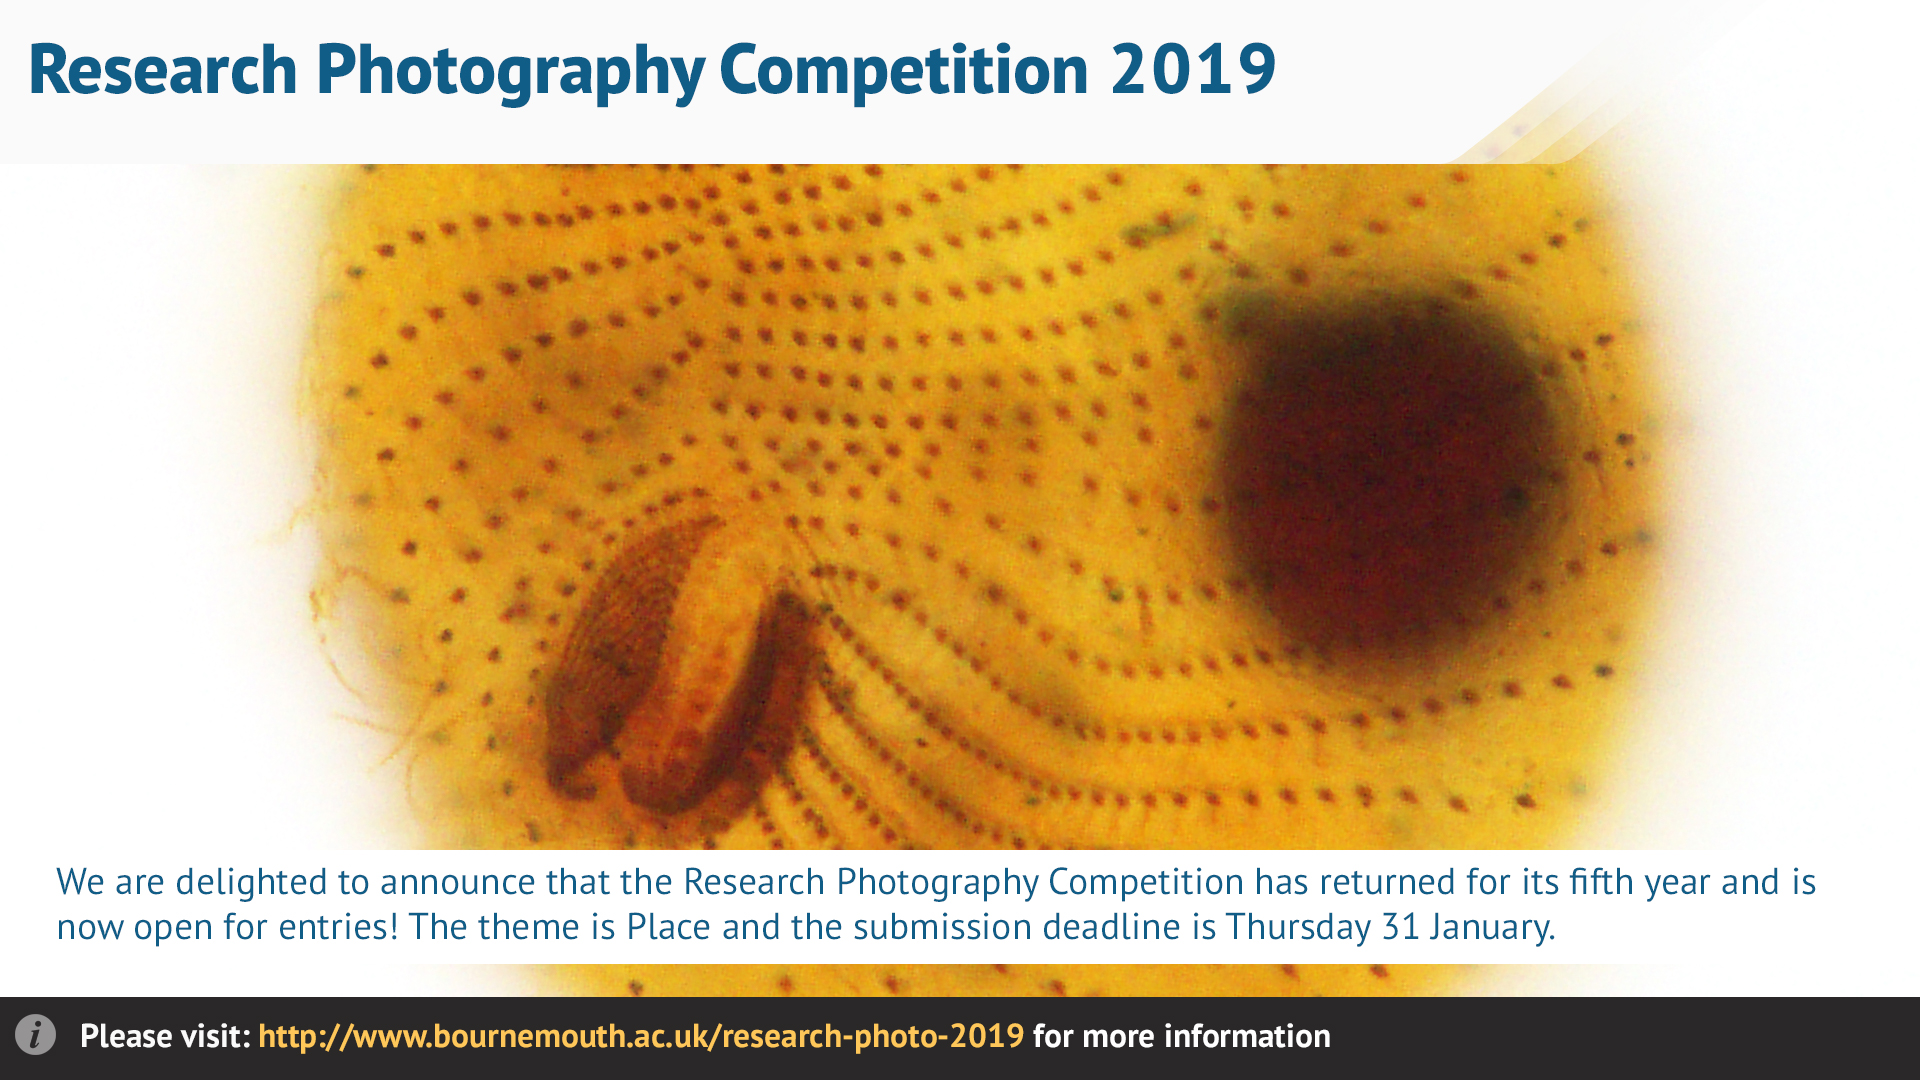 Research-photography-comp-2019.jpg